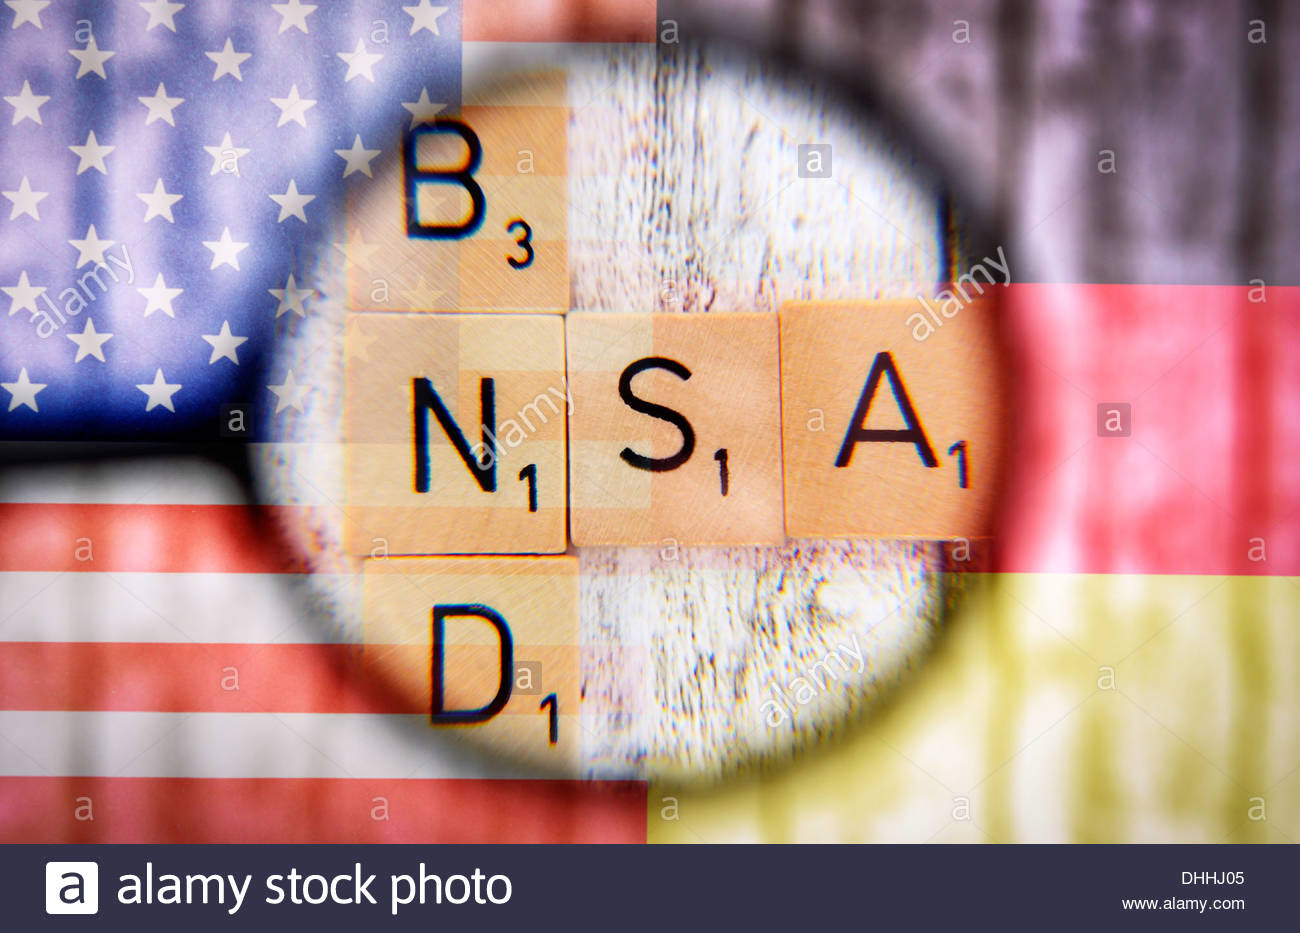 http://c8.alamy.com/comp/DHHJ05/cooperation-of-german-intelligence-service-bnd-and-nsa-DHHJ05.jpg